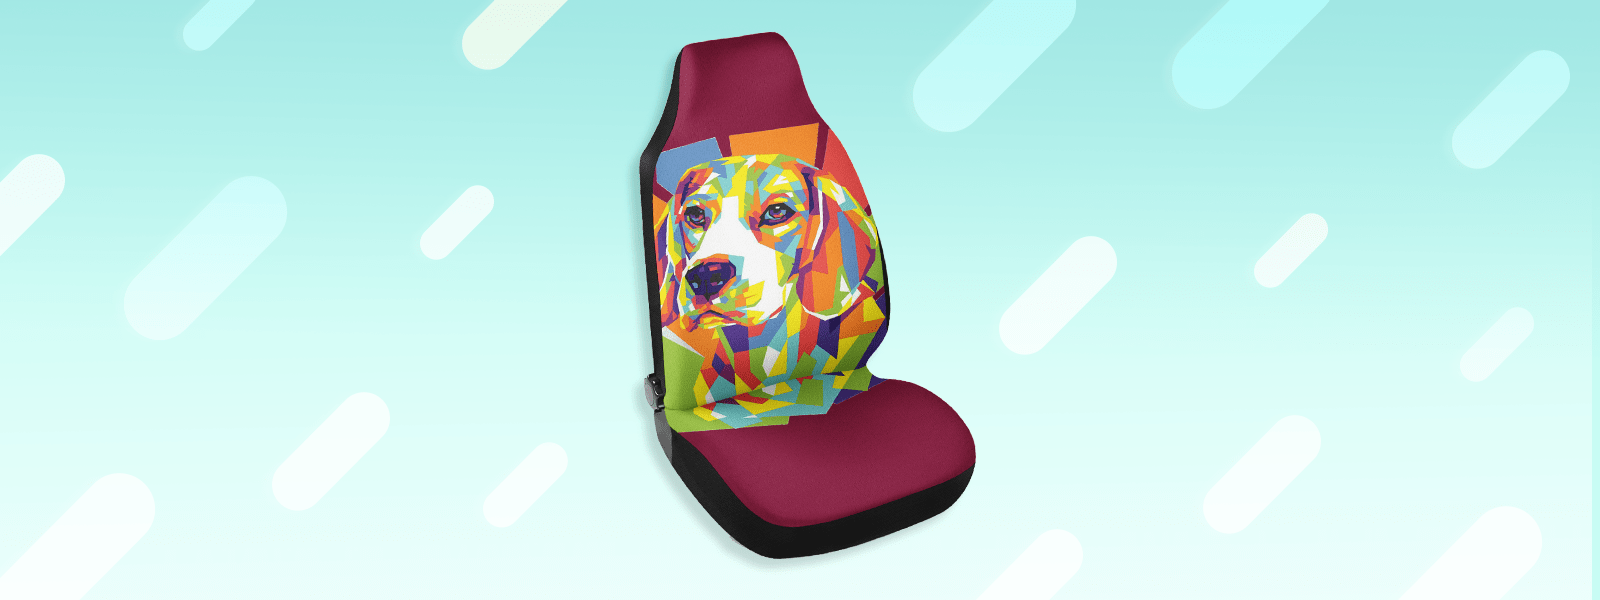 New Product! 3 Uses for Custom Car Seat Covers